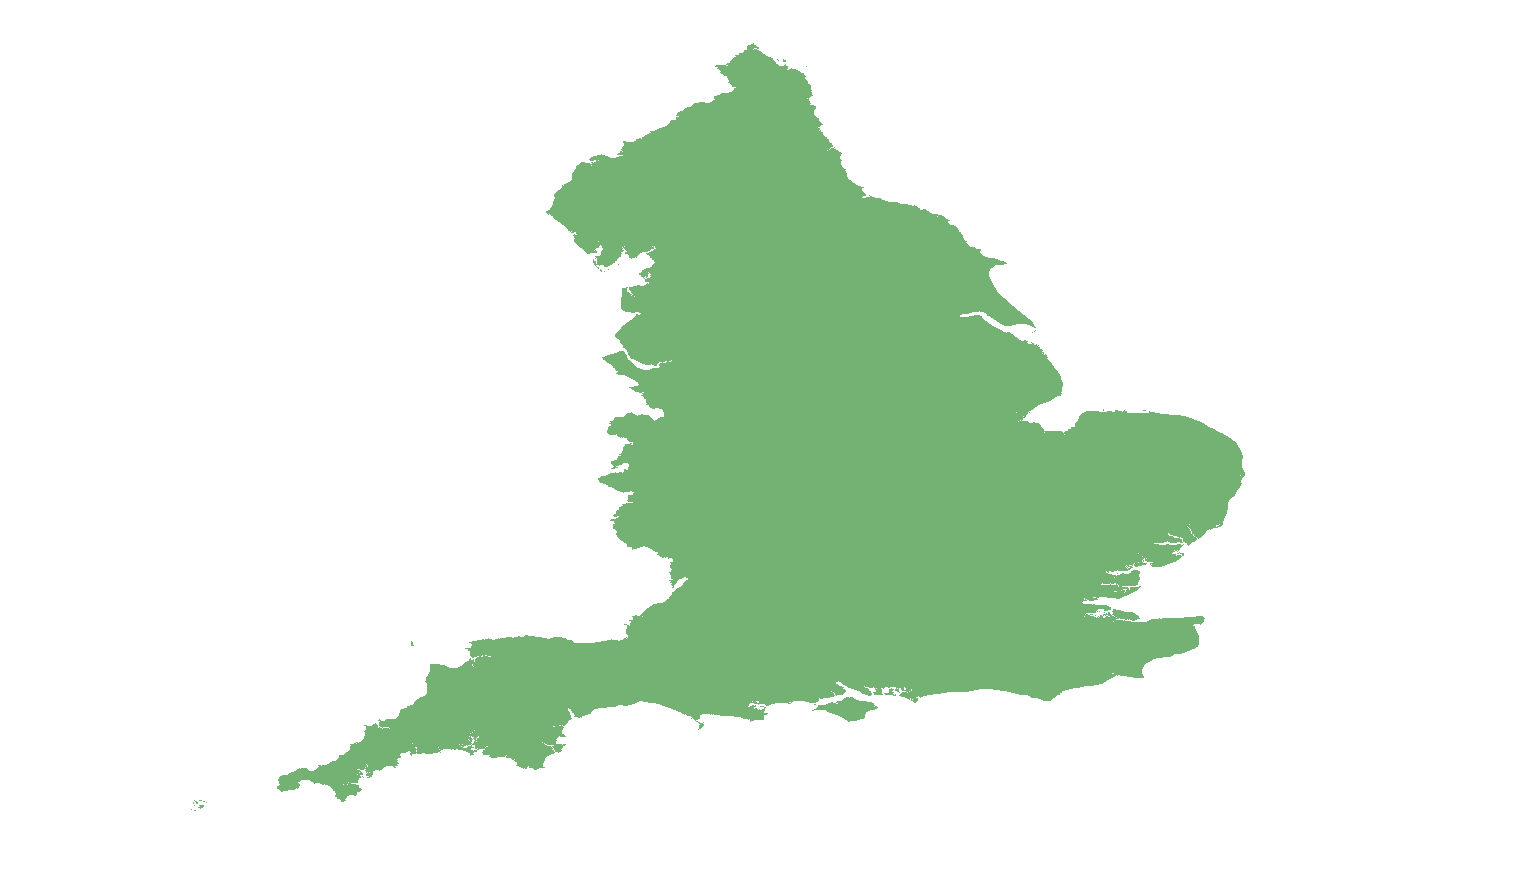 blank map of England